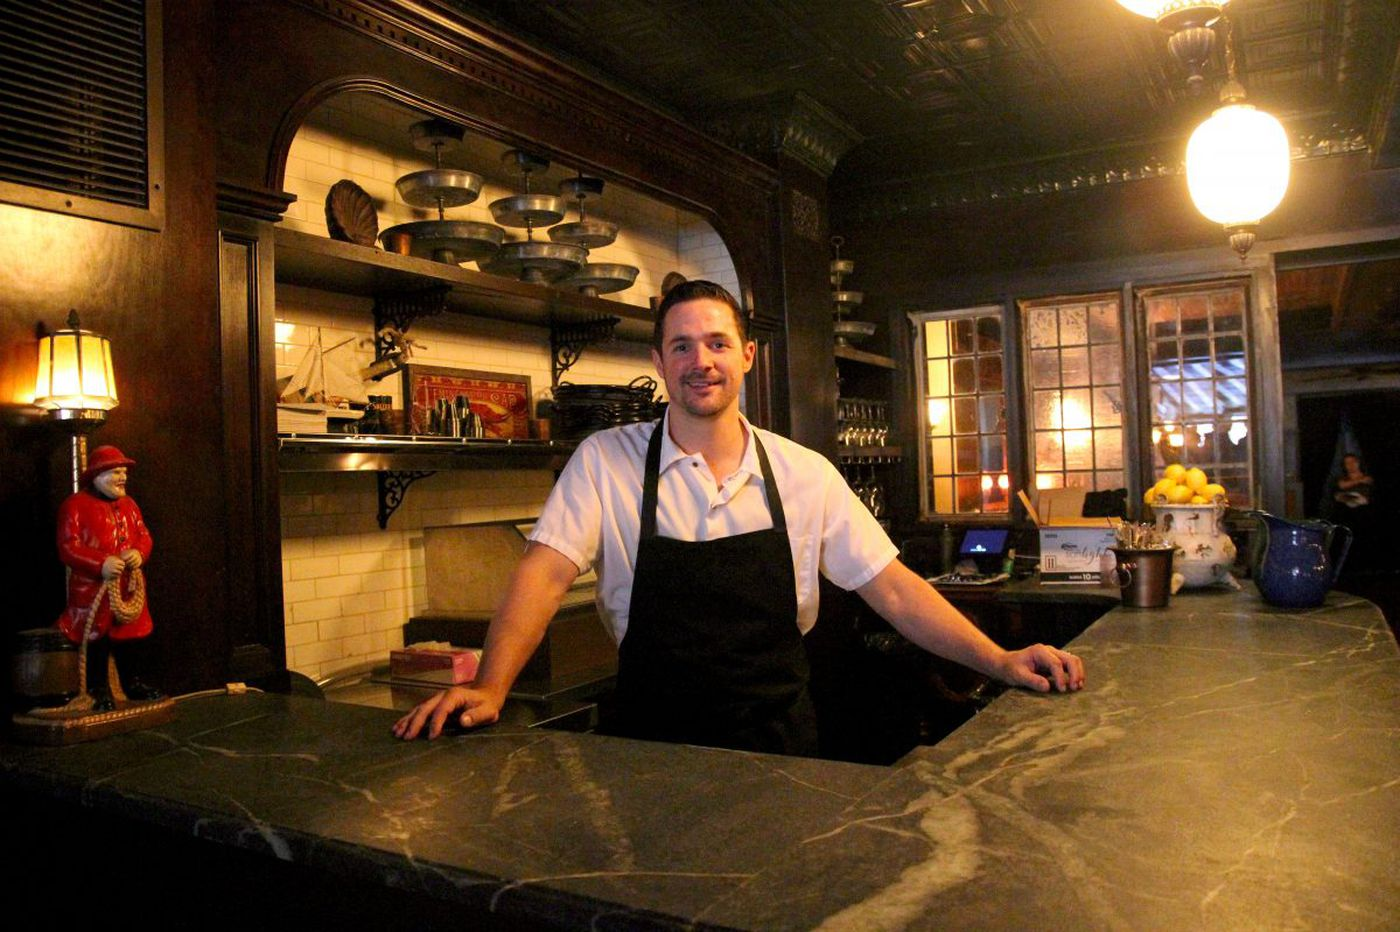 Royal Boucherie: Top Chef Elmi in Old City with a French-inspired bar